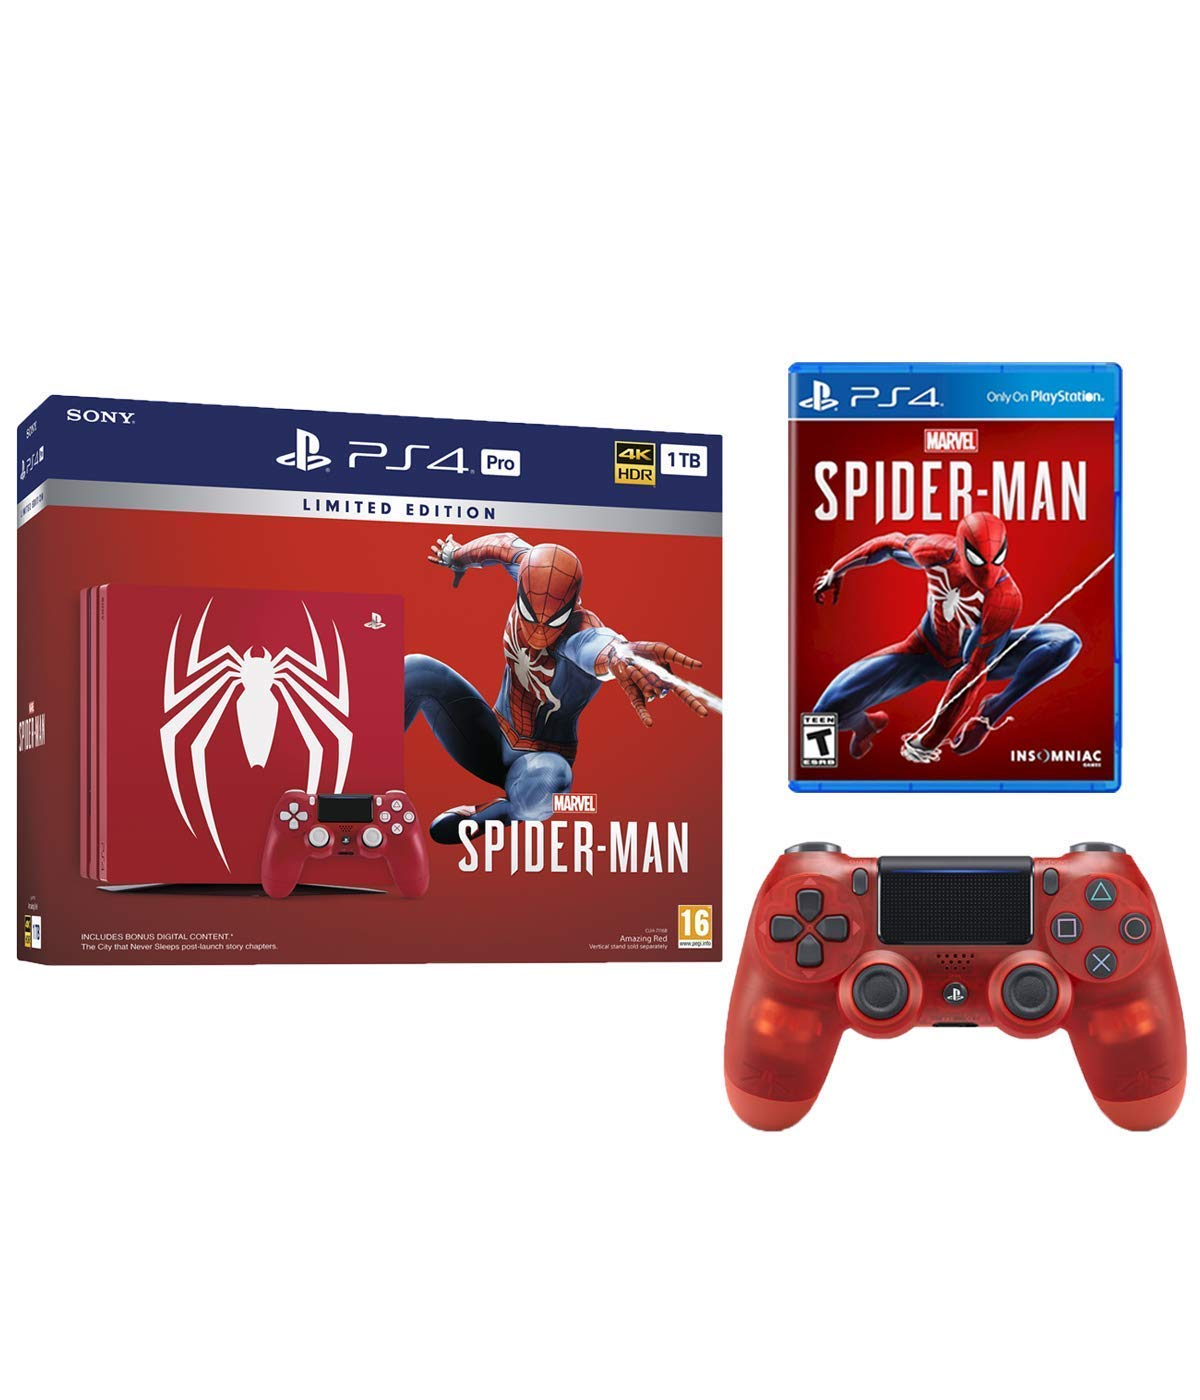 Sony Playstation 4 Pro Marvel's Spider-Man Limited Edition Amazing Red 1TB  Console with Extra Crystal Red Controller